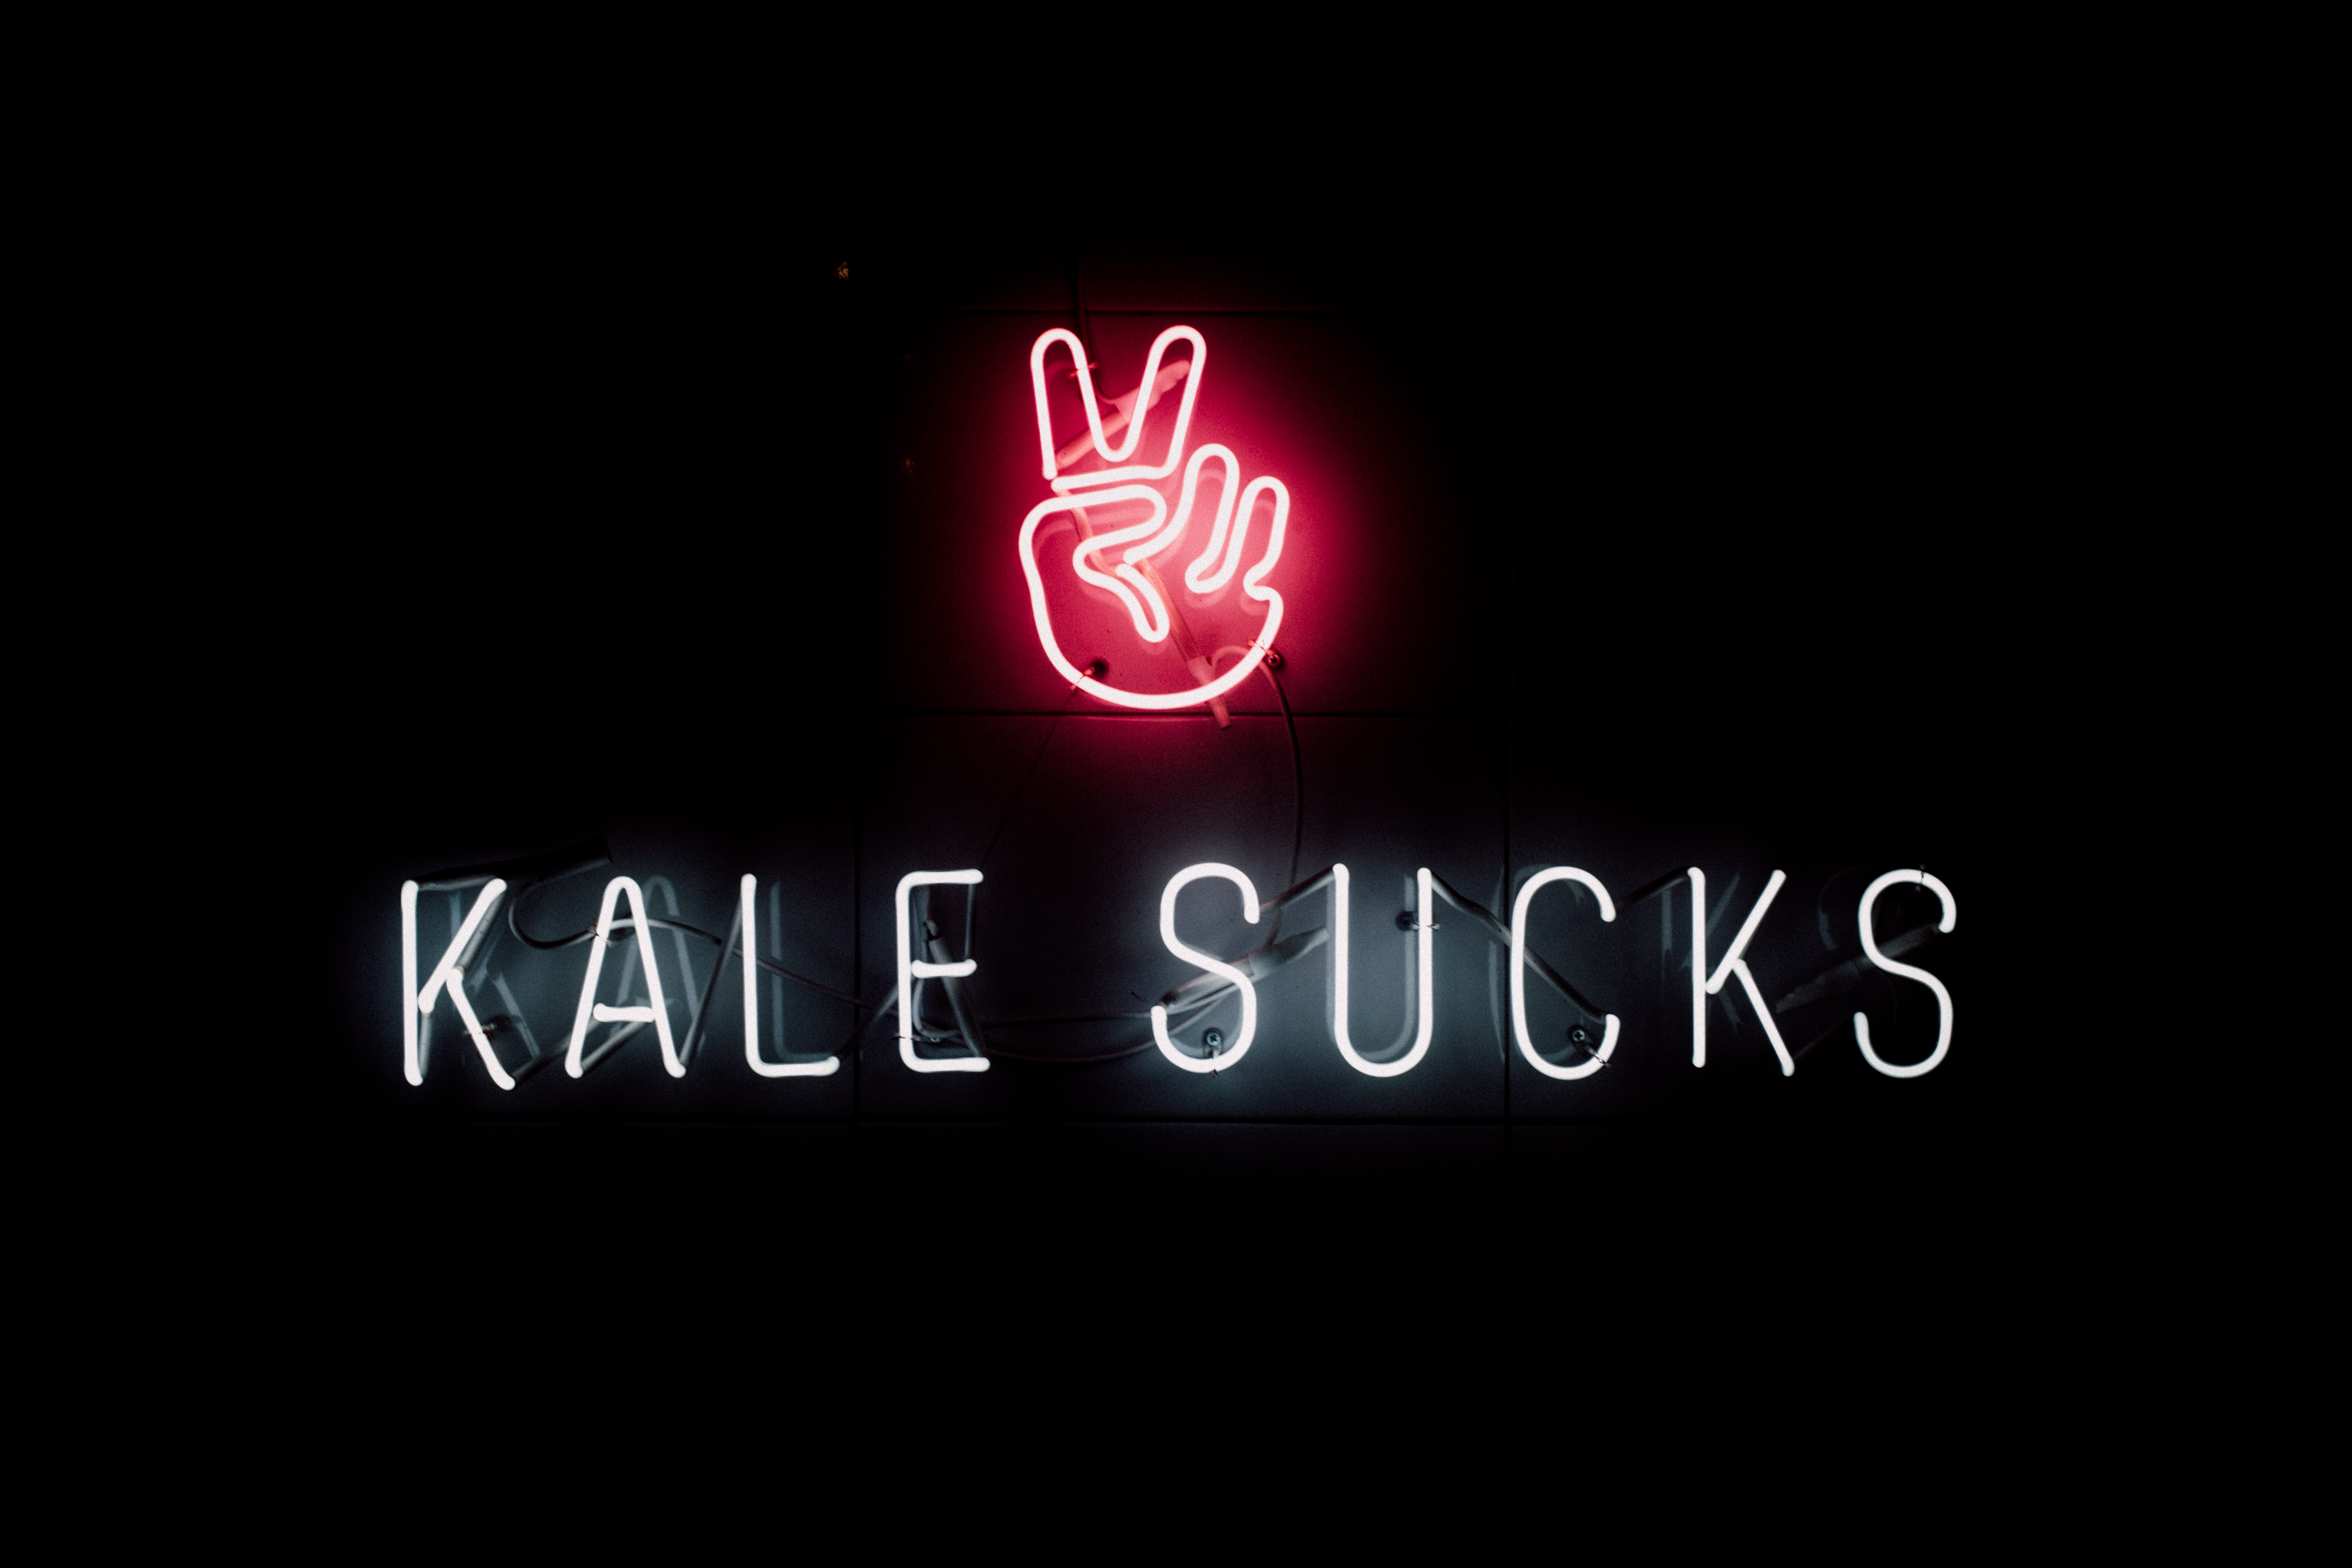 Kale Sucks neon sign